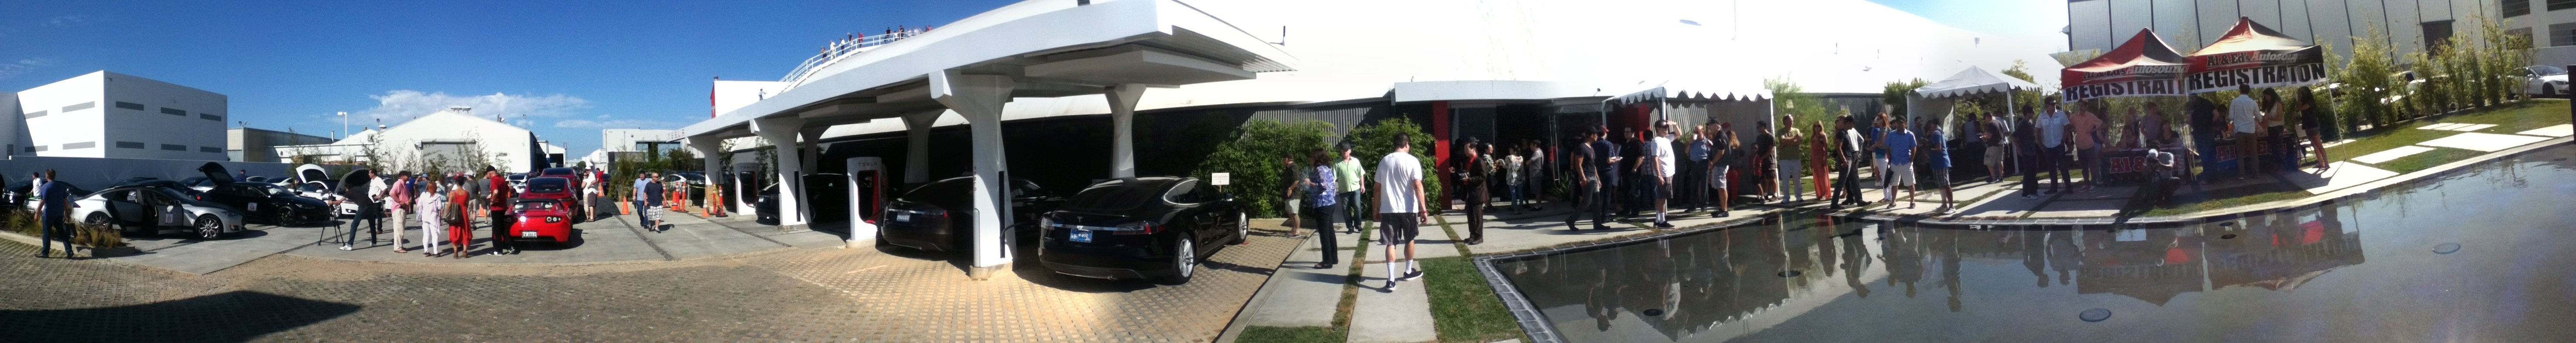 Panoramic view of the Tesla Run.